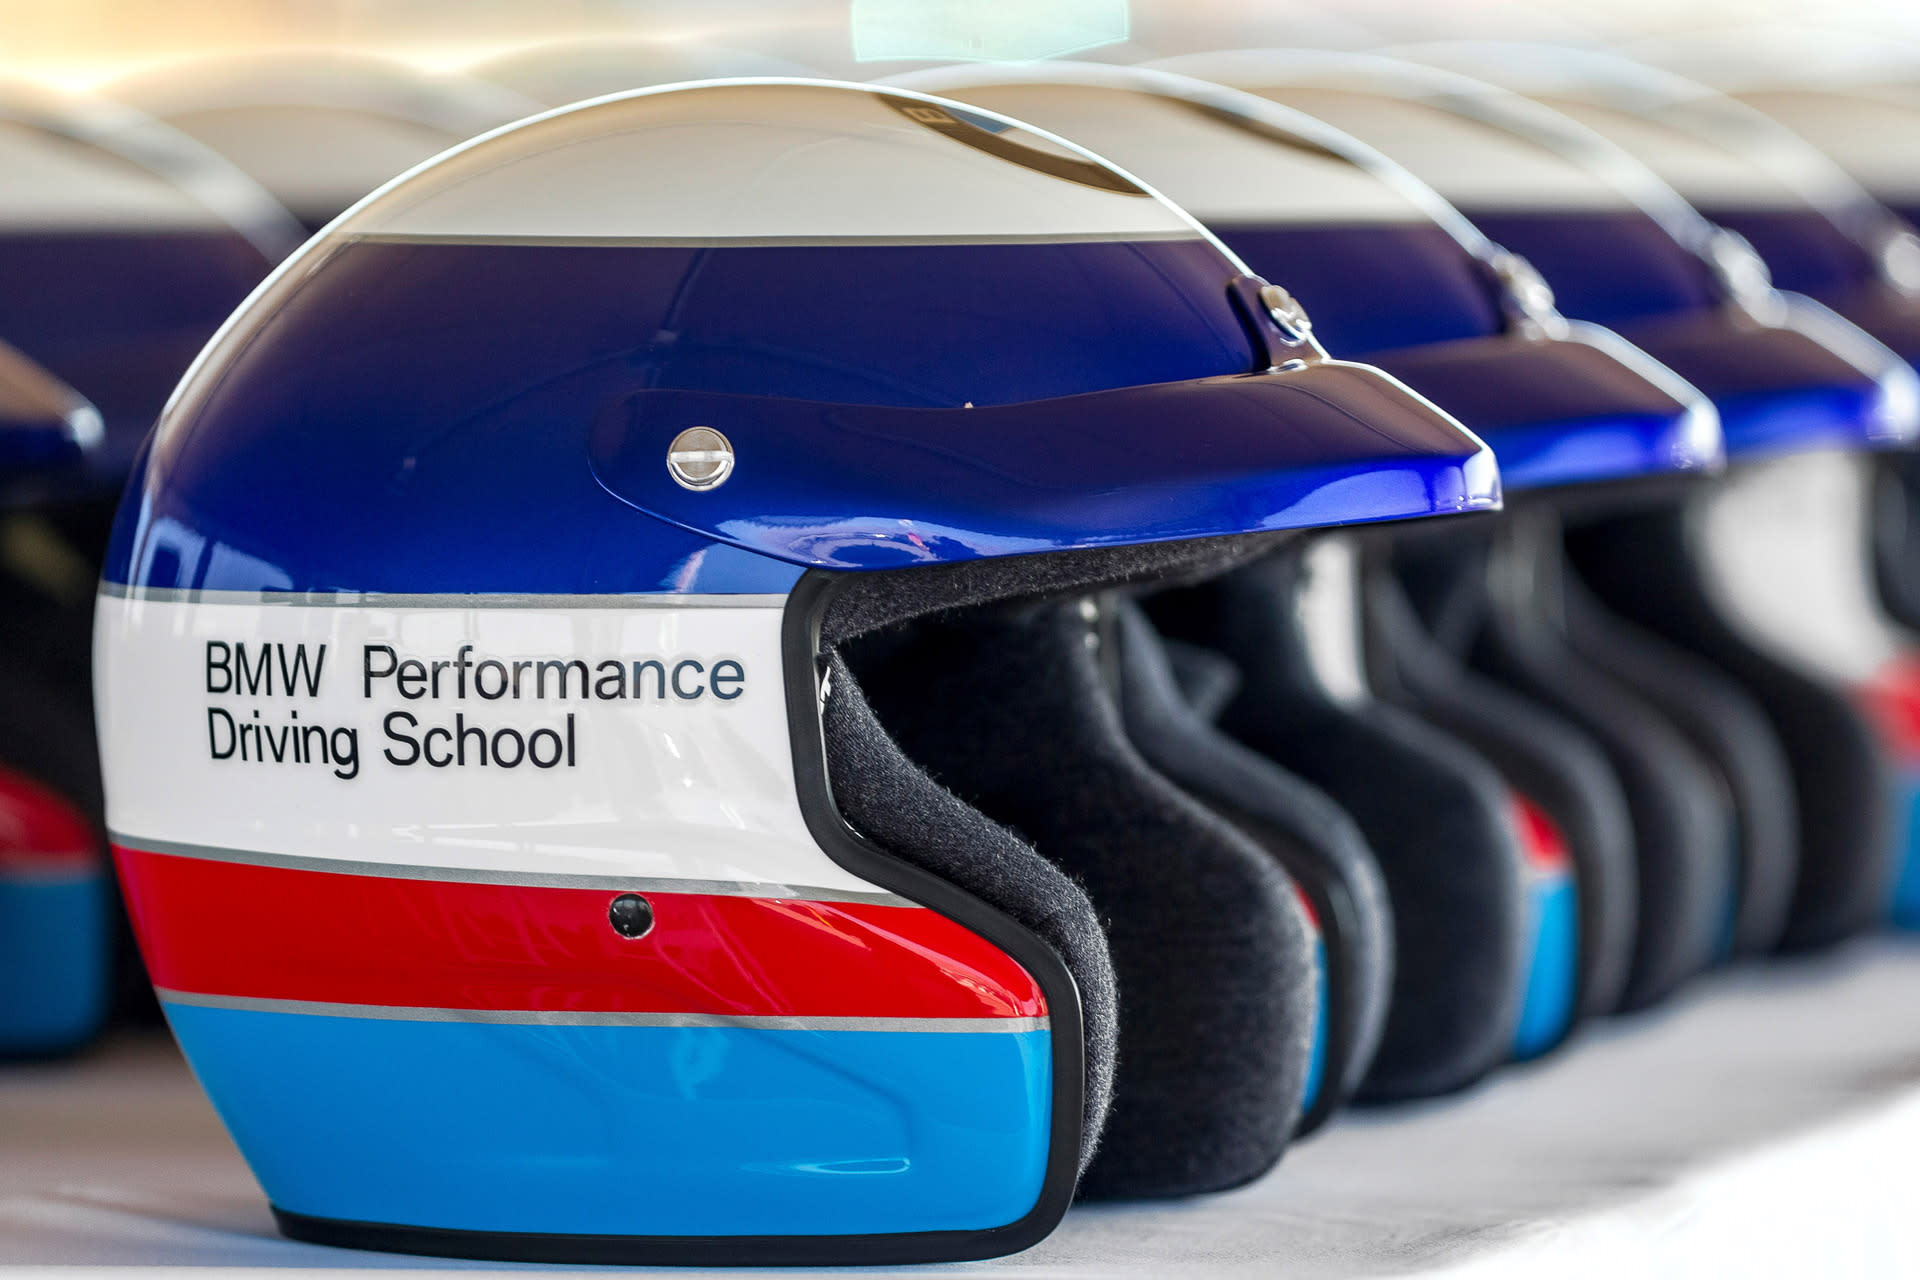 BMW Performance Driving School helmets